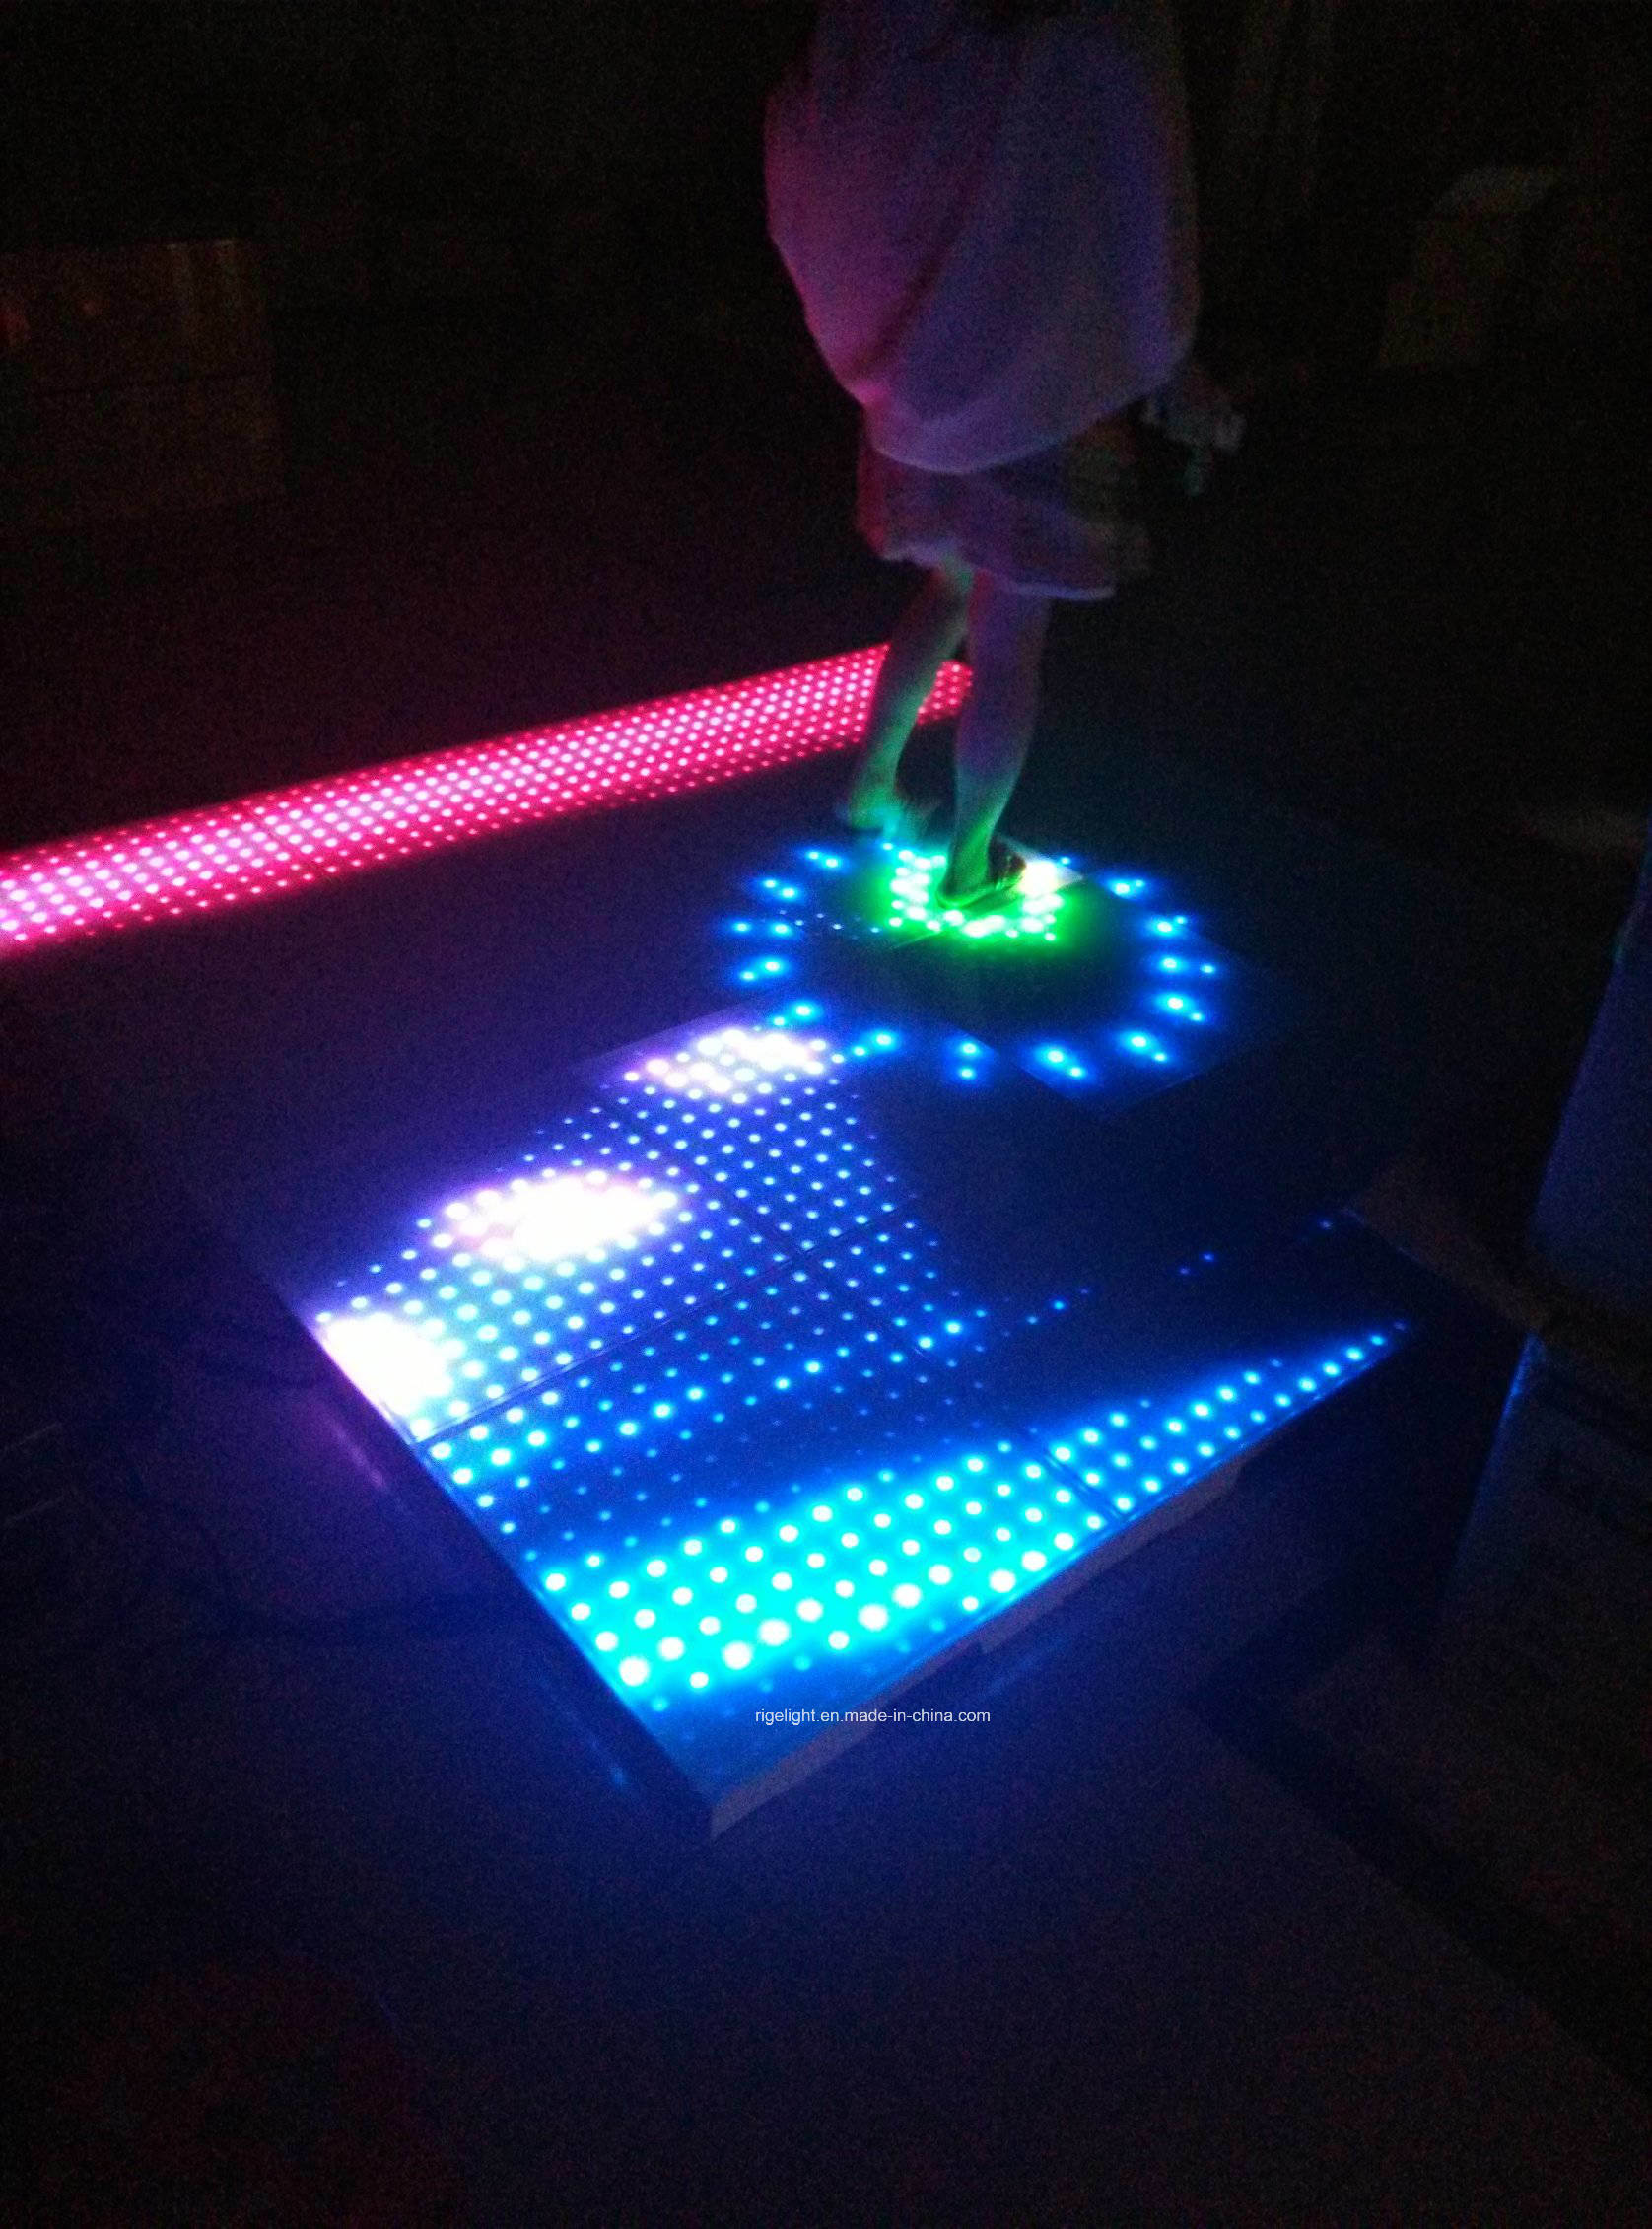 8*8 Pixels LED Interactive Dance Floor for DJ Dicso Light